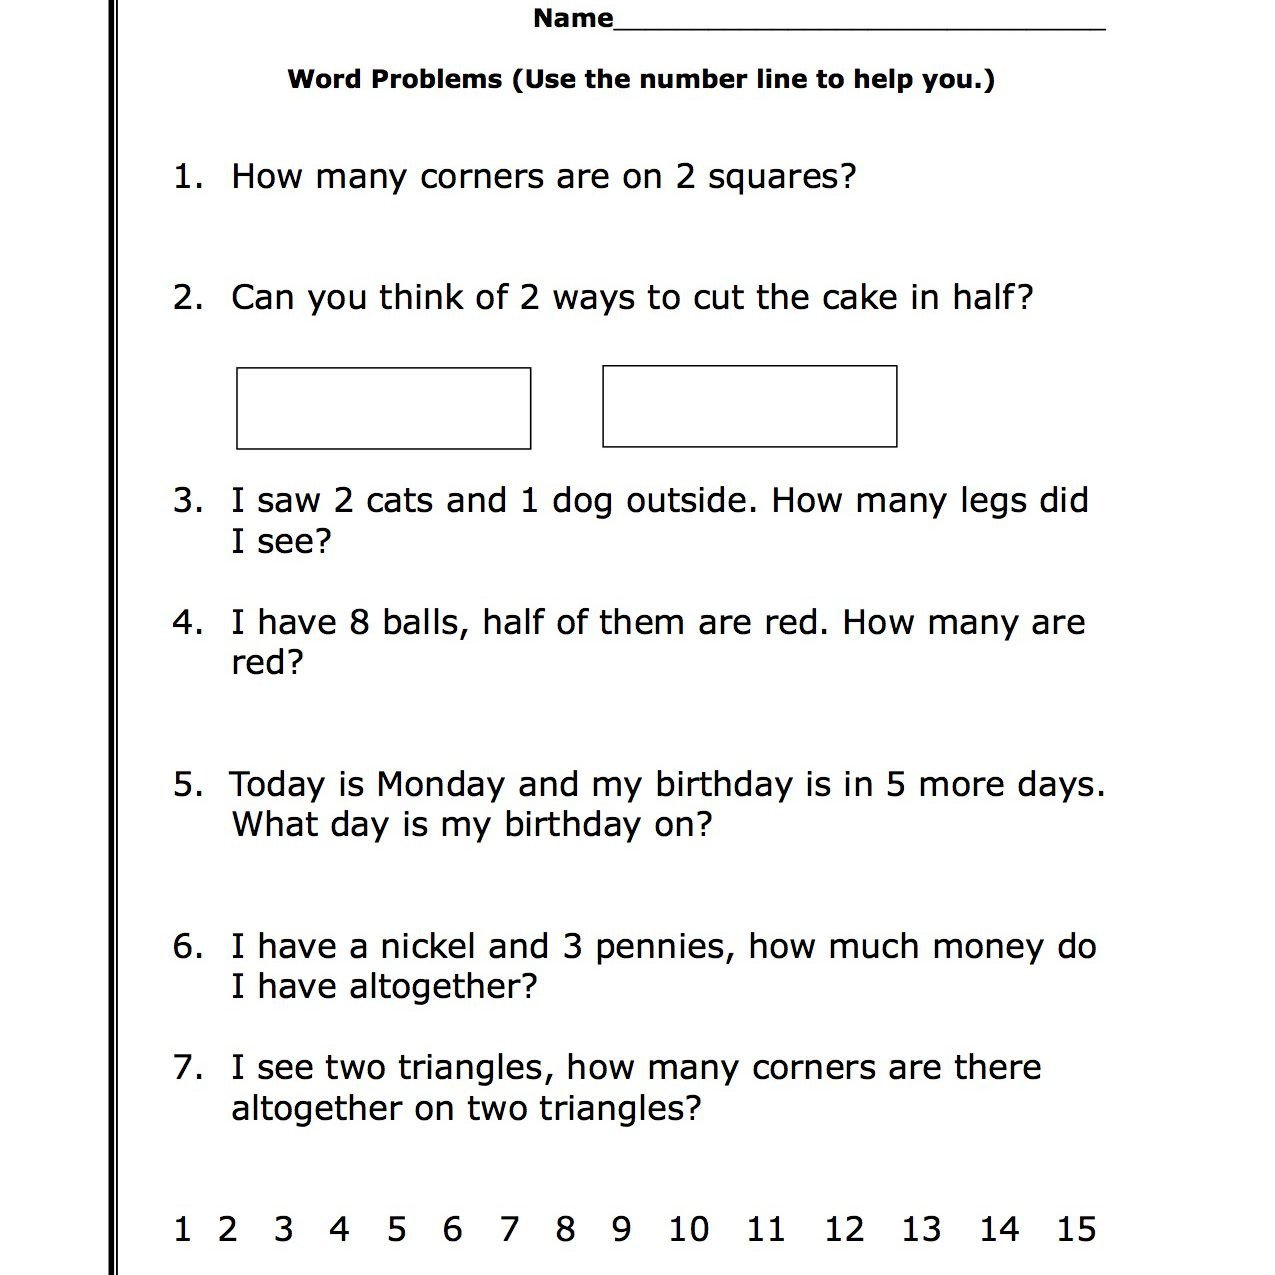 Word Problems Worksheets 1st Grade Worksheet 1st Grade Math Problems Hard Equations for 6th